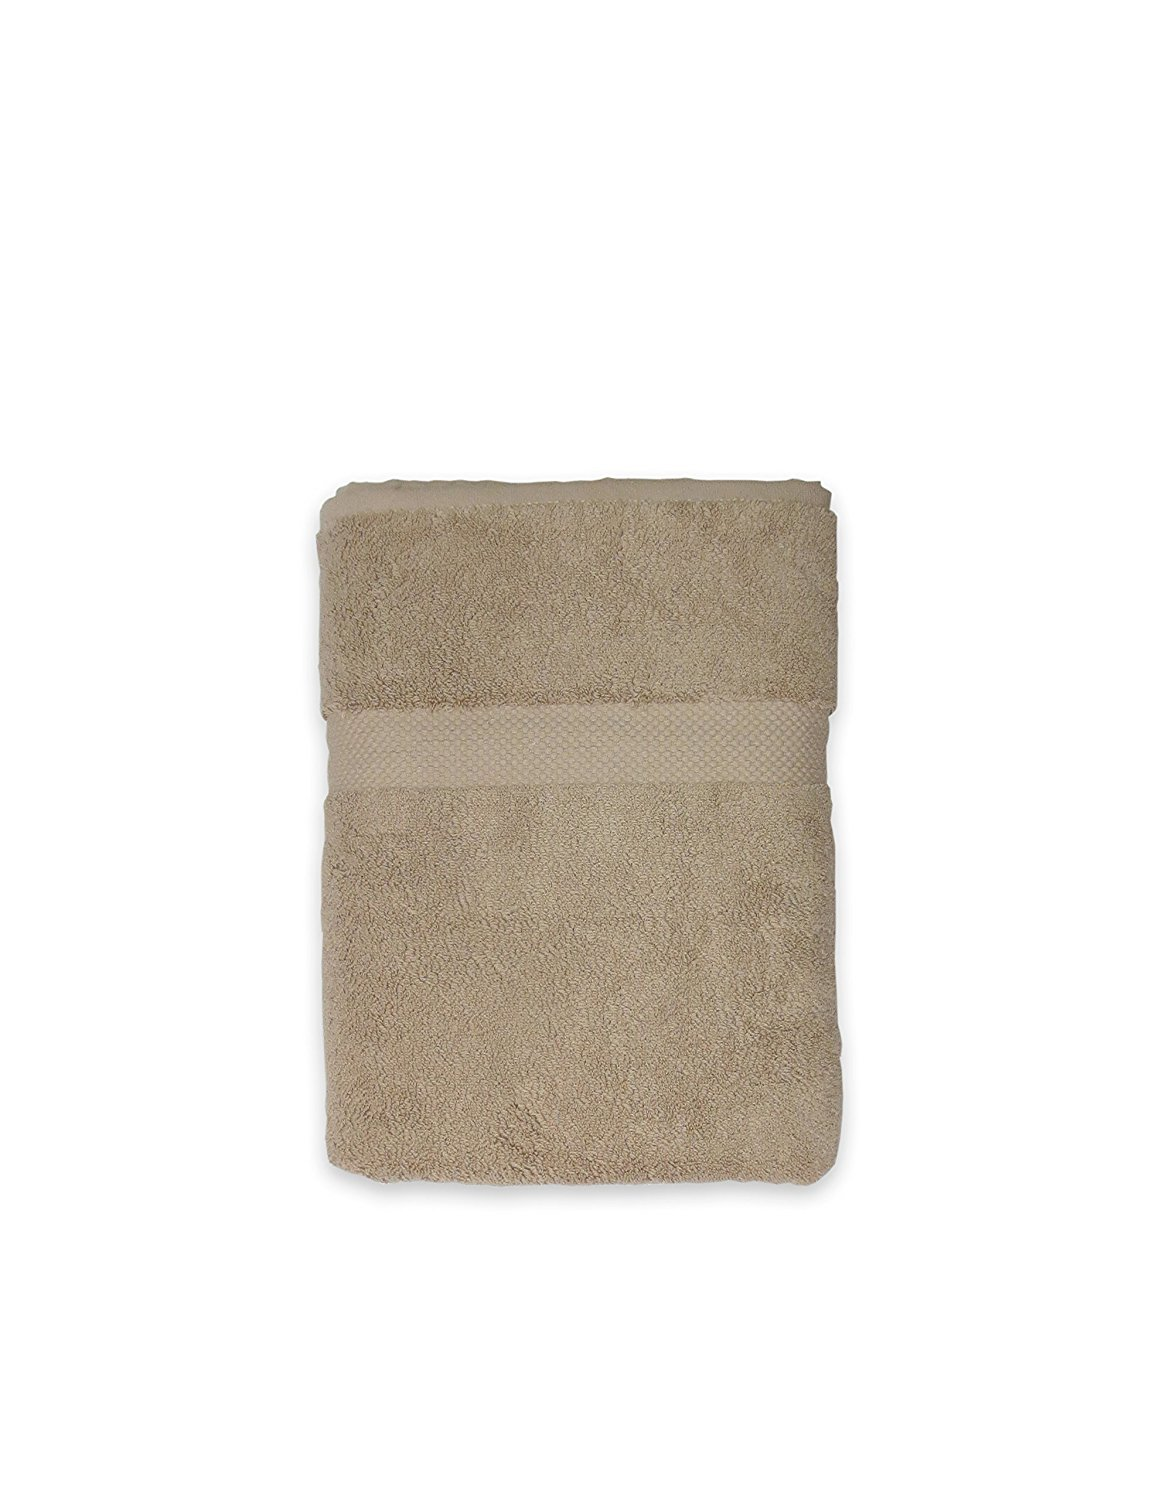 Turkish Luxury Linens 800 Gsm Bath Towel, Taupe